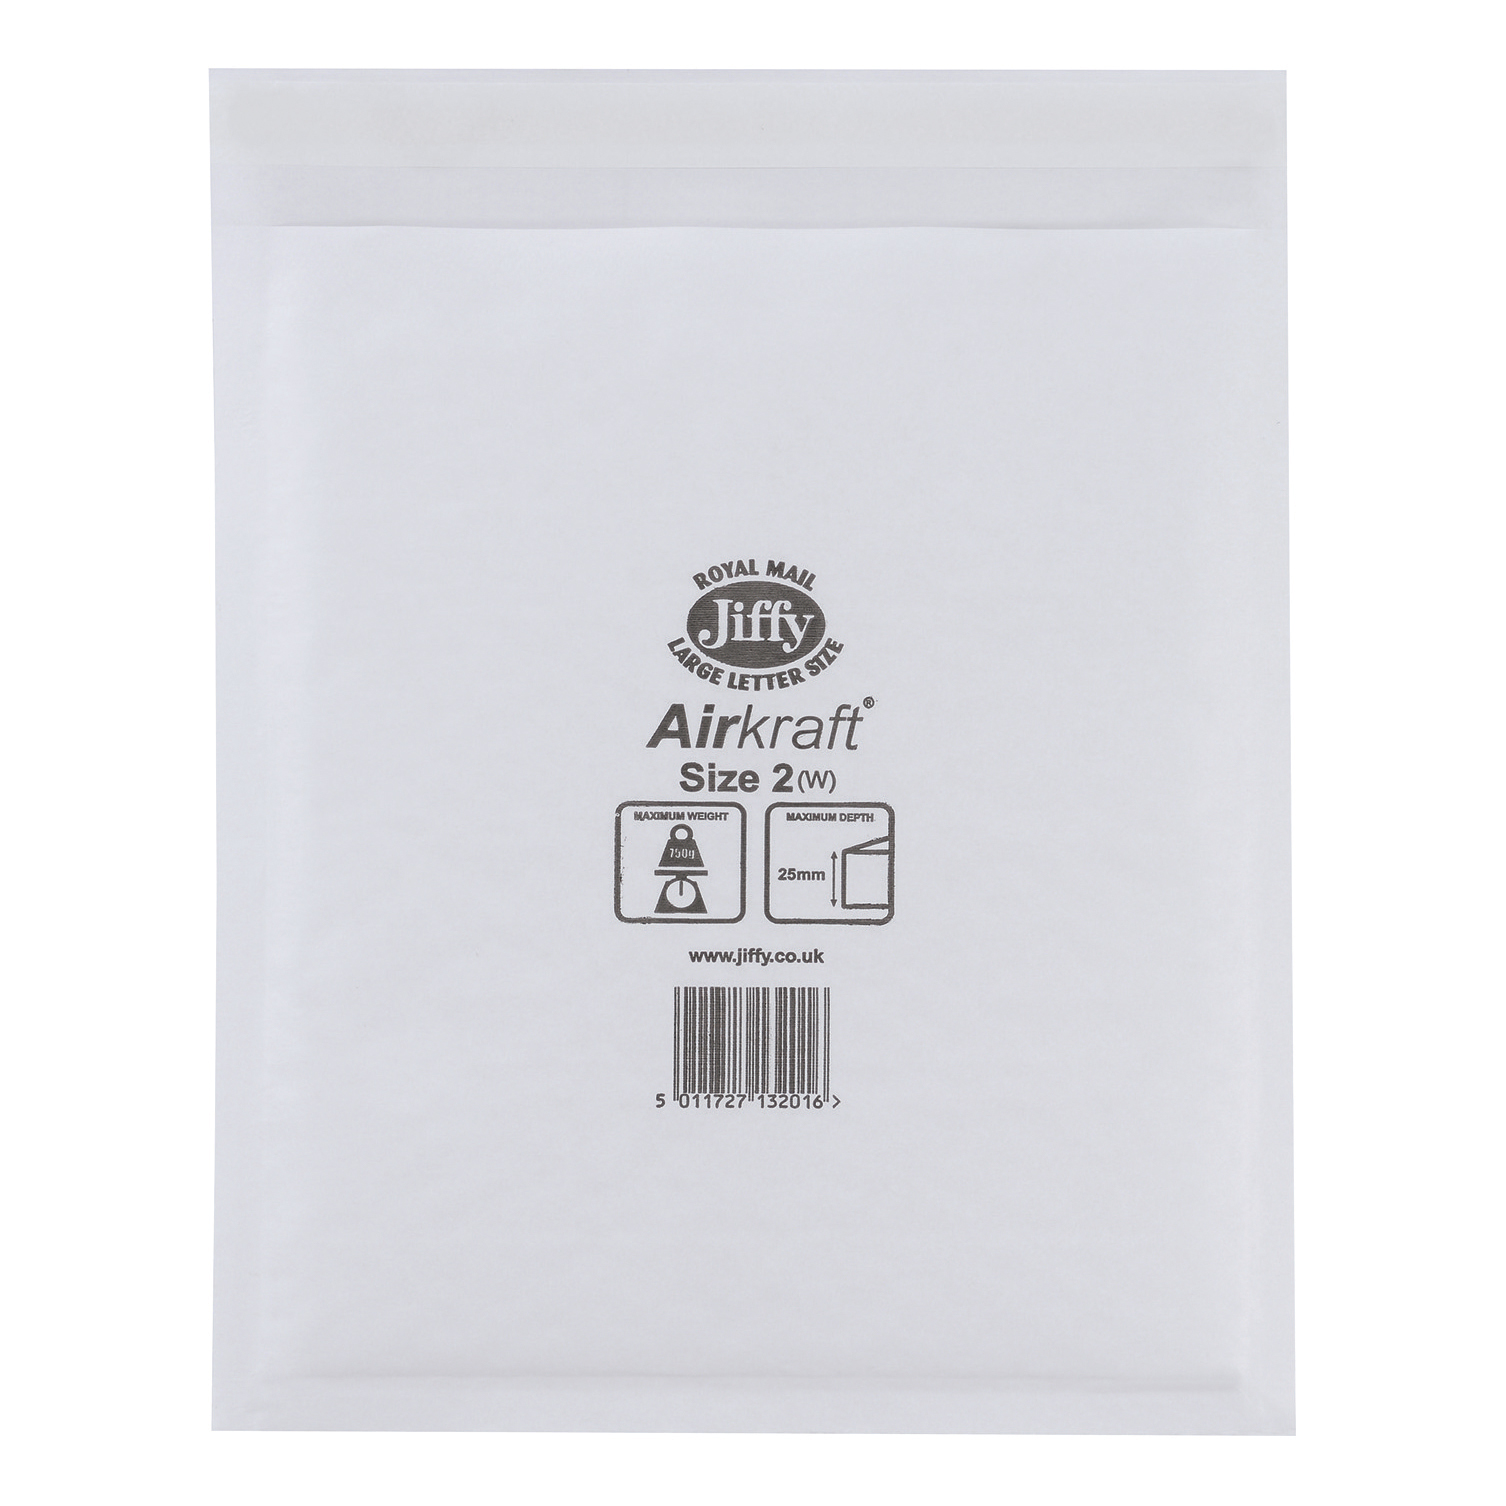 Image for Jiffy Airkraft Postal Bags Bubble-lined Peel and Seal Size 2 205x245mm White Ref JL-AMP-2-10 [Pack 10]